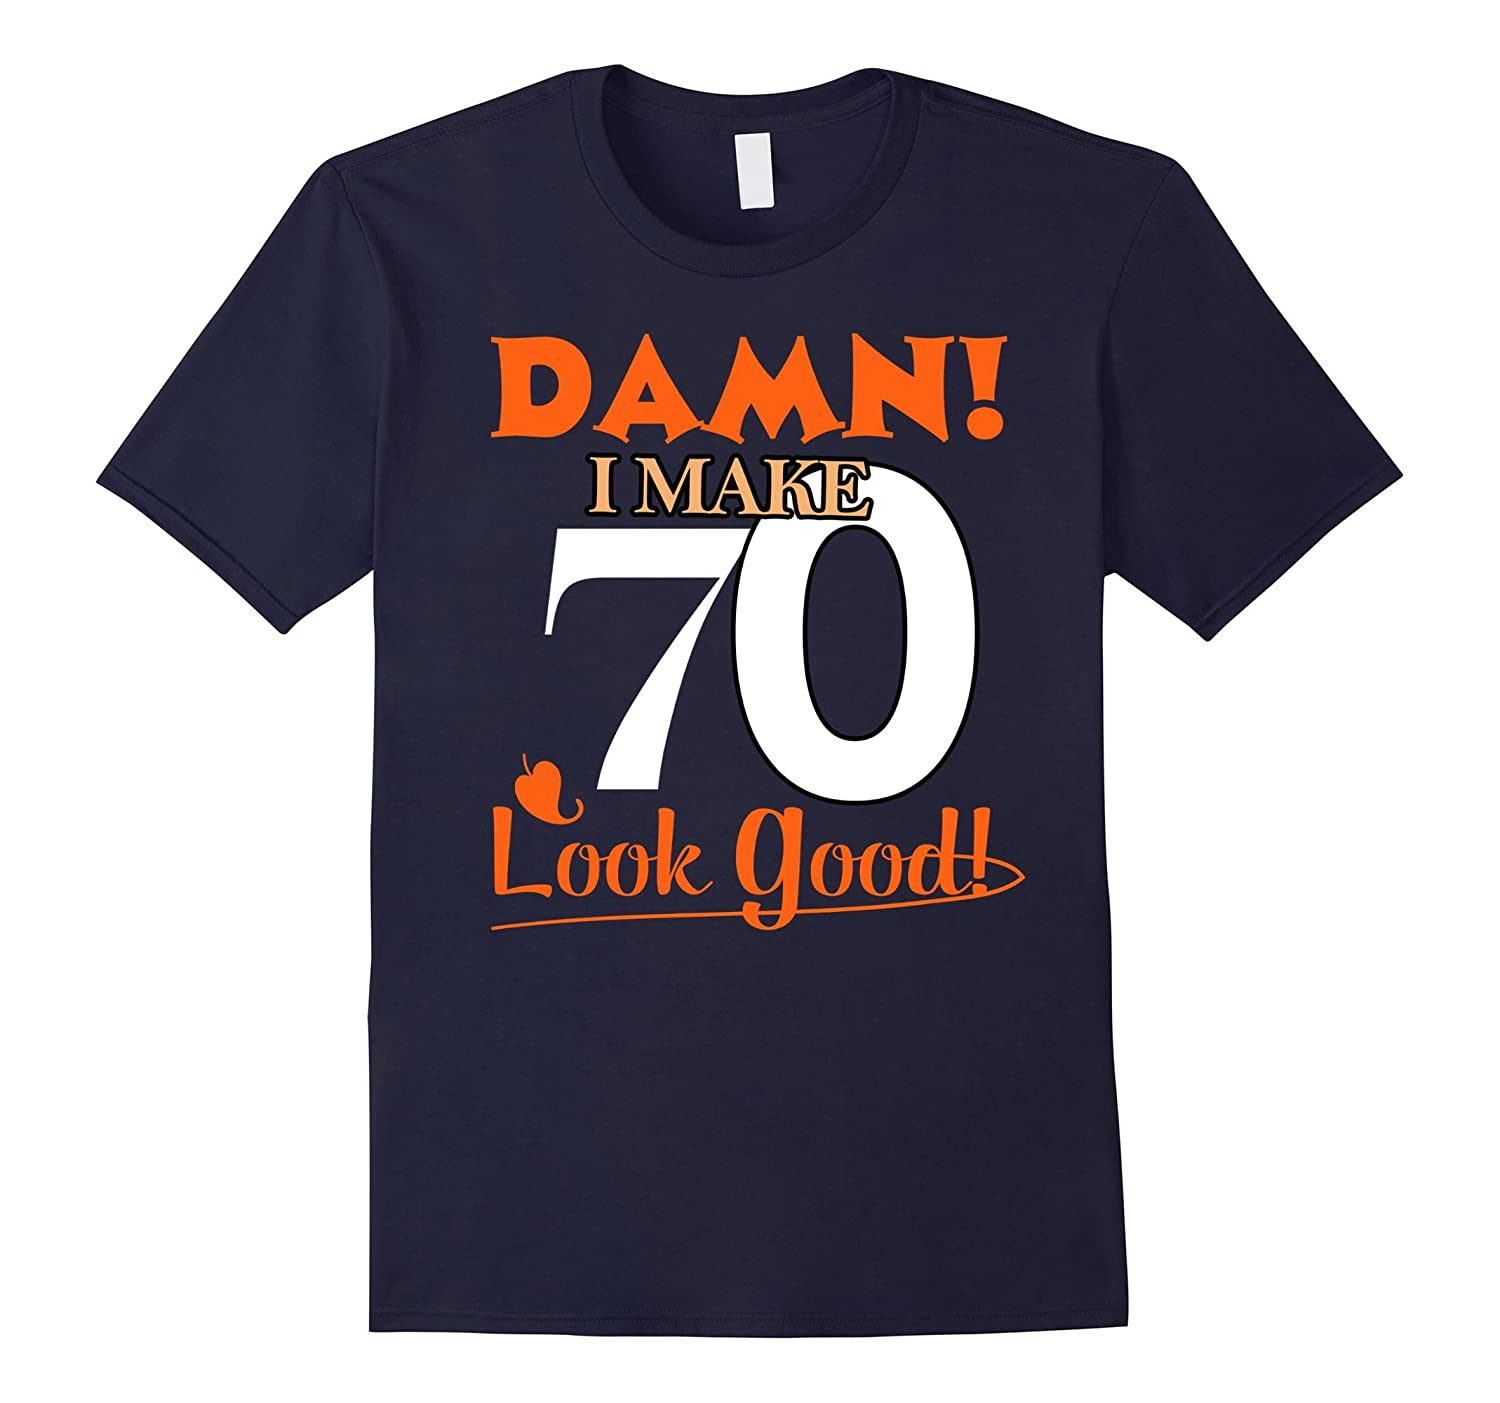 Damn, I Make 70 Look Good Funny 70th Birthday Tshirt-FL